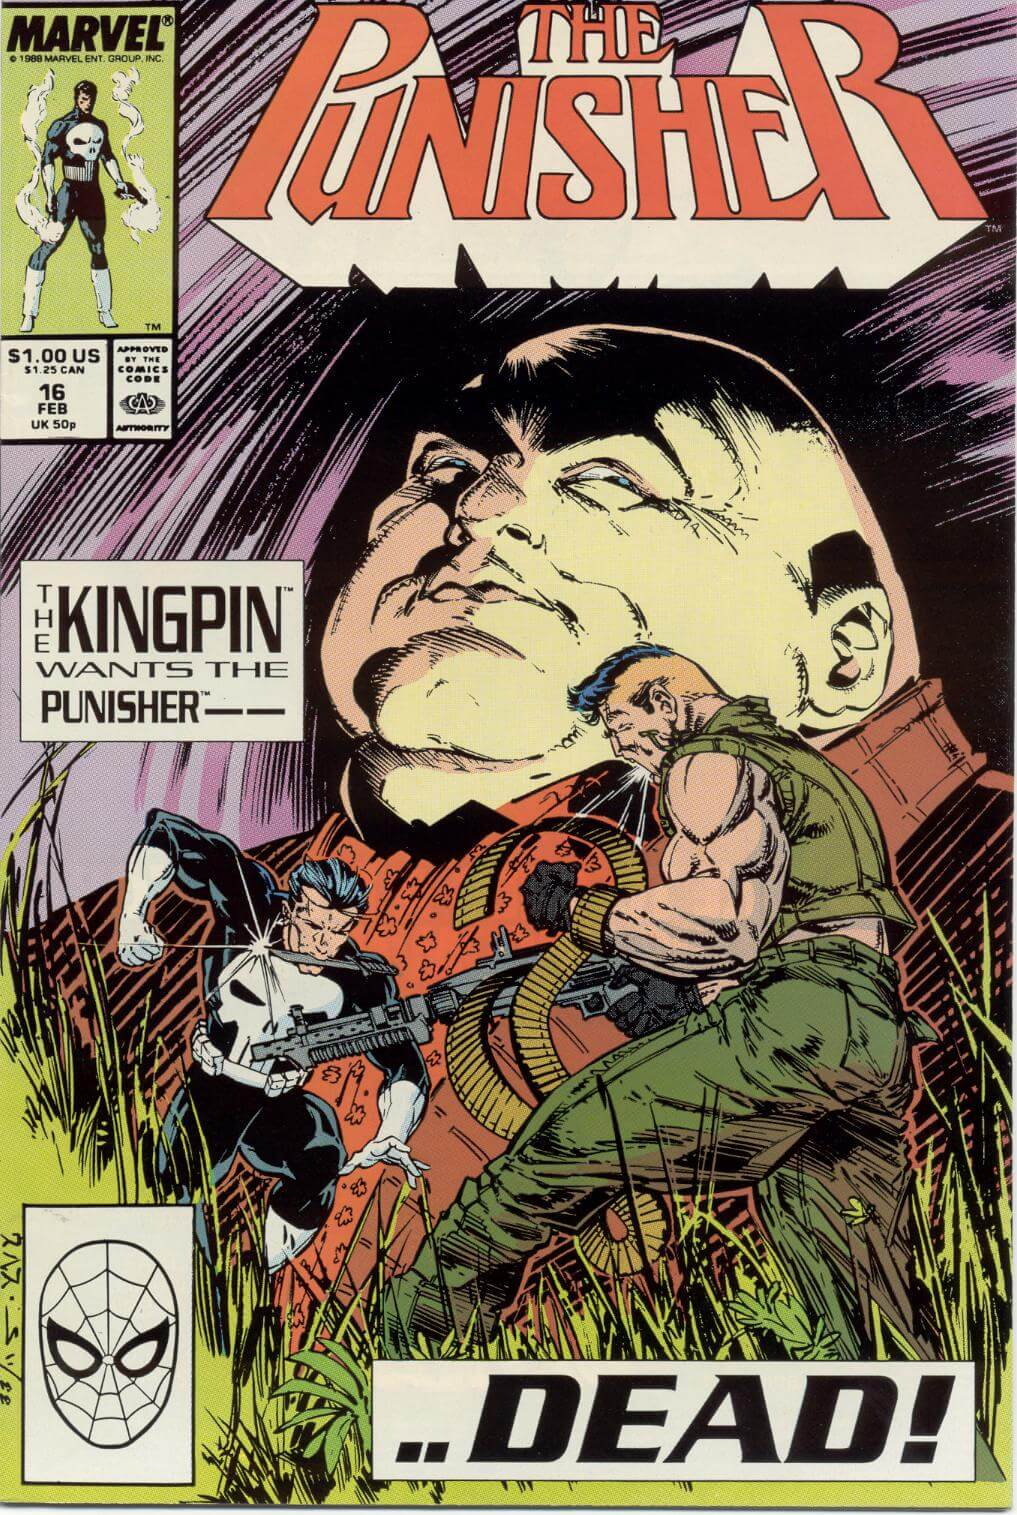 The Punisher Vol 2 #16